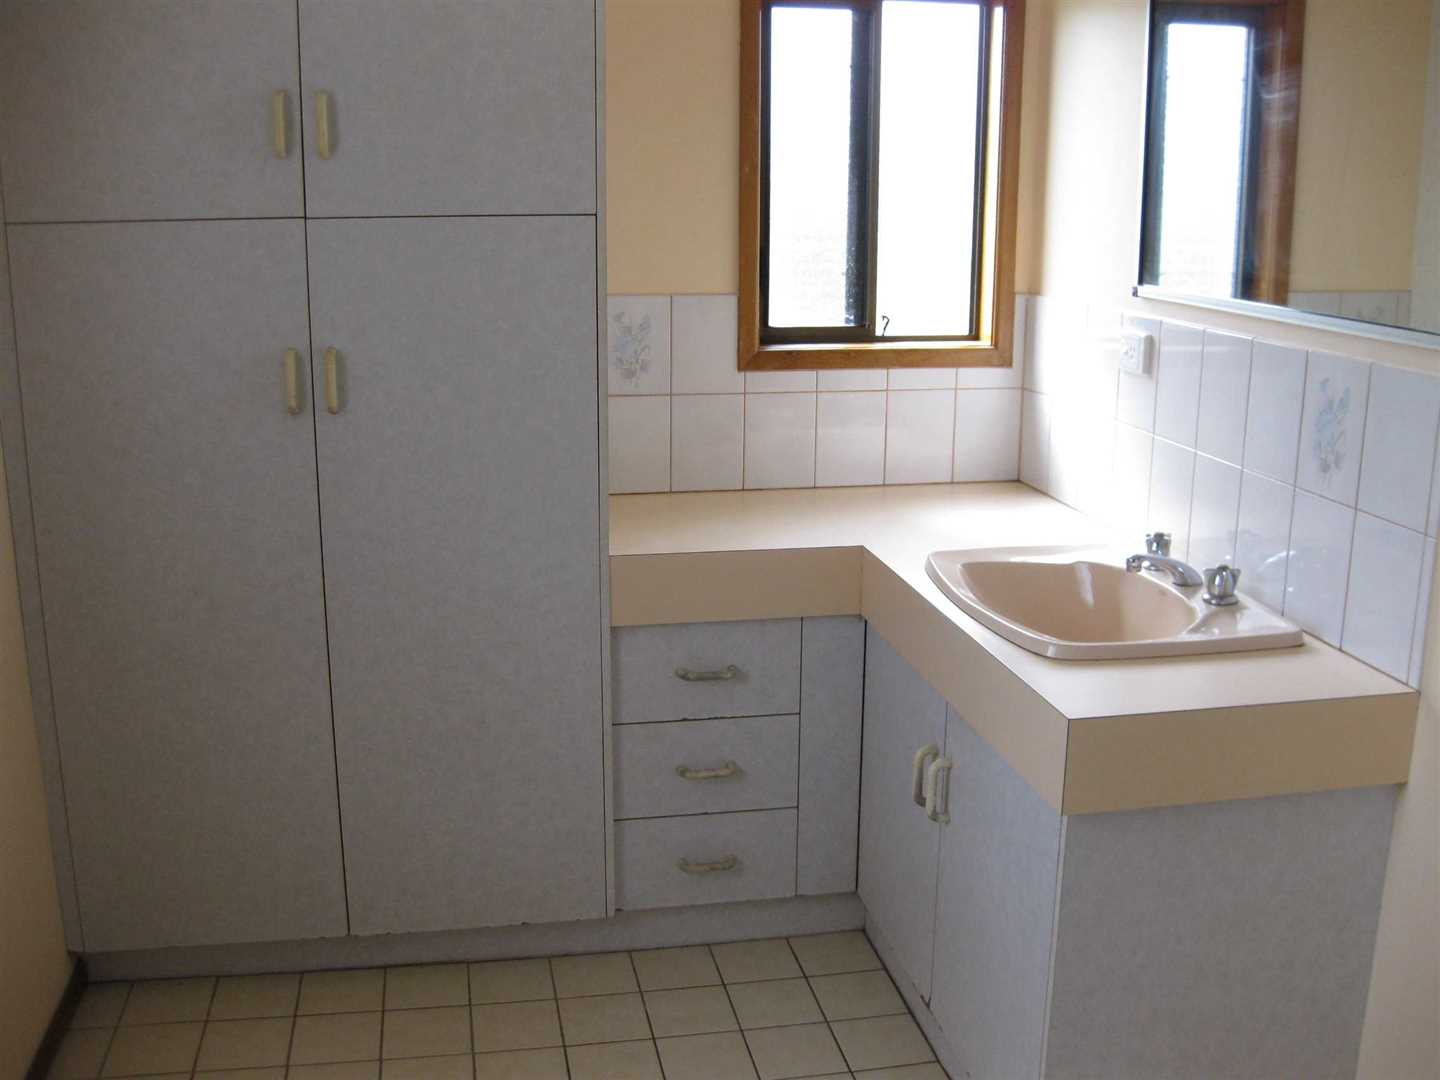 Inside view of part of home showing part of bathroom, photo 1